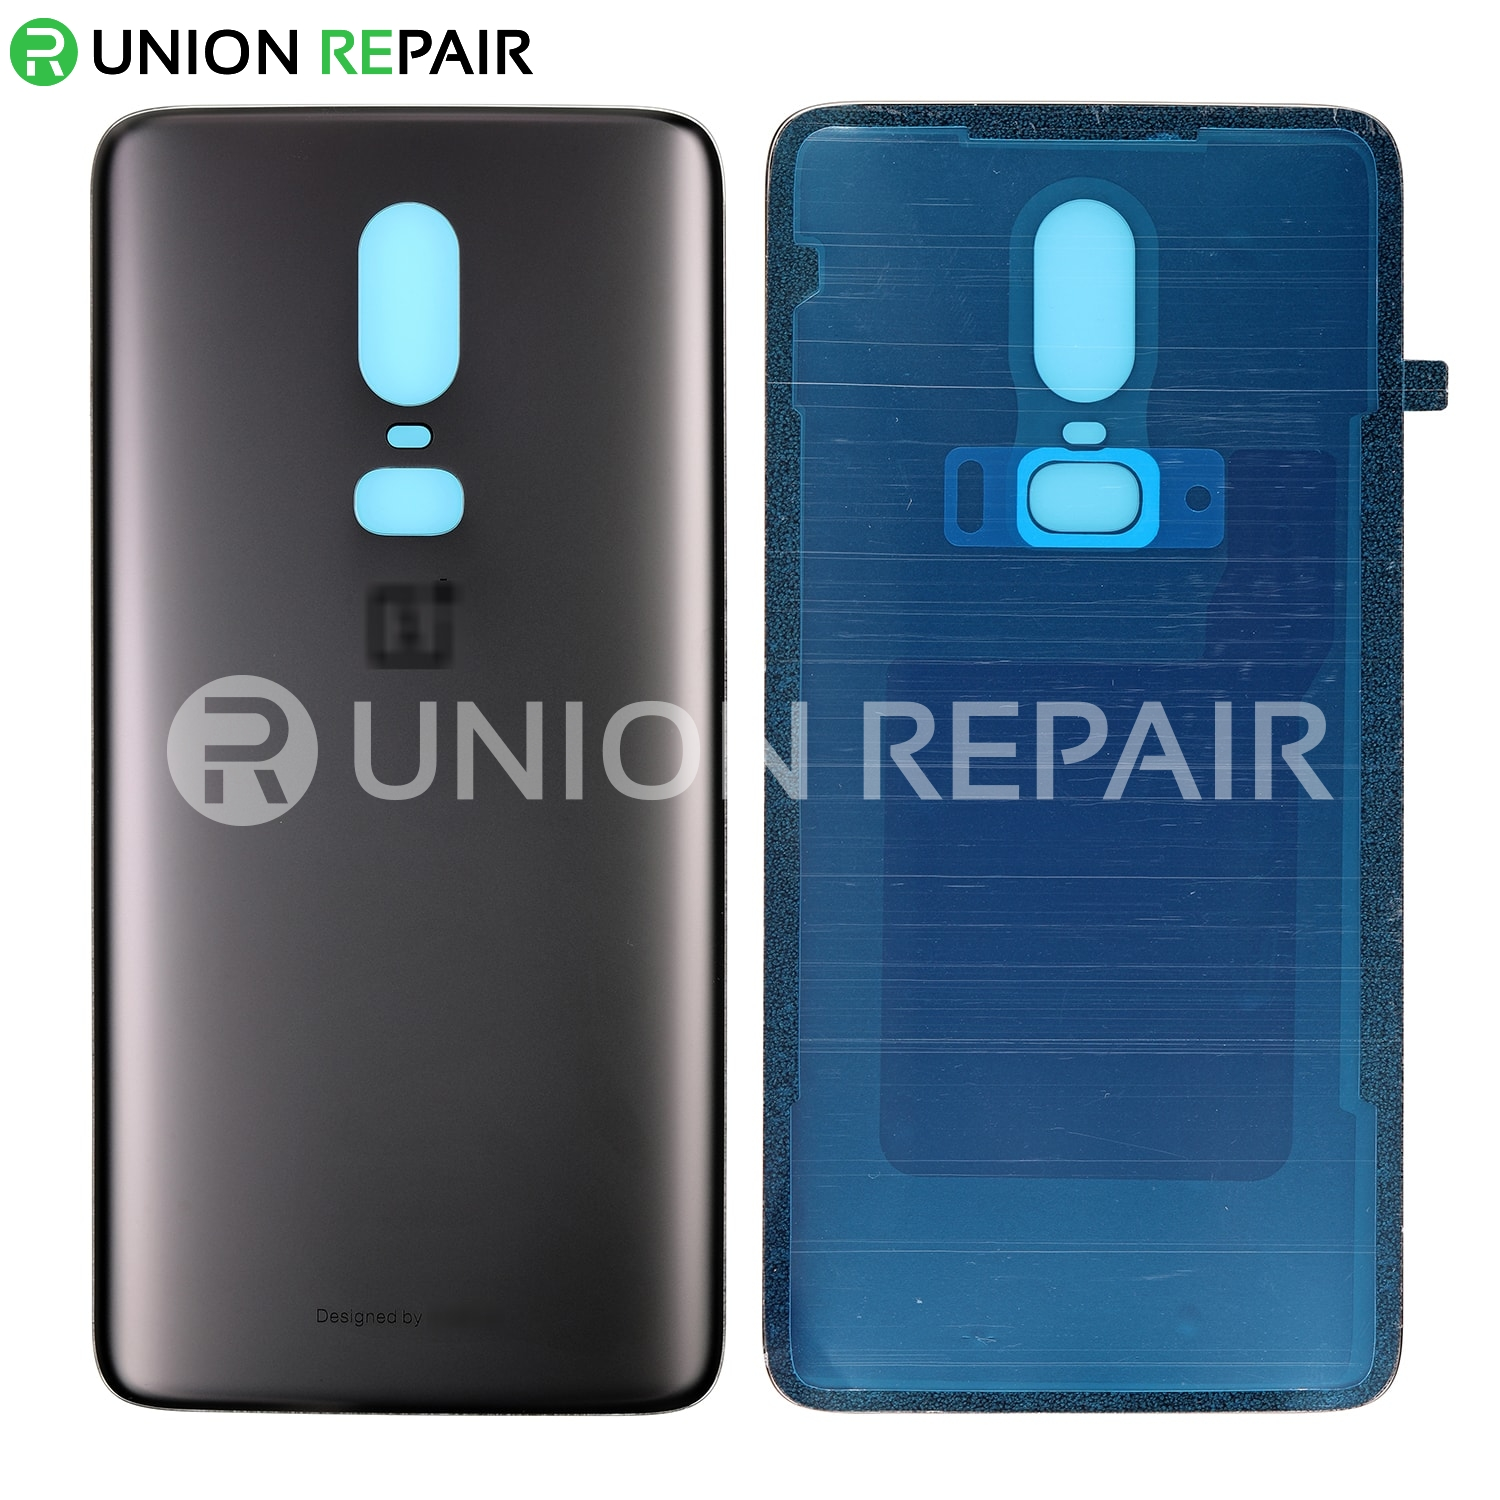 new concept 67bf8 50de2 Replacement for OnePlus 6 Back Cover - Midnight Black